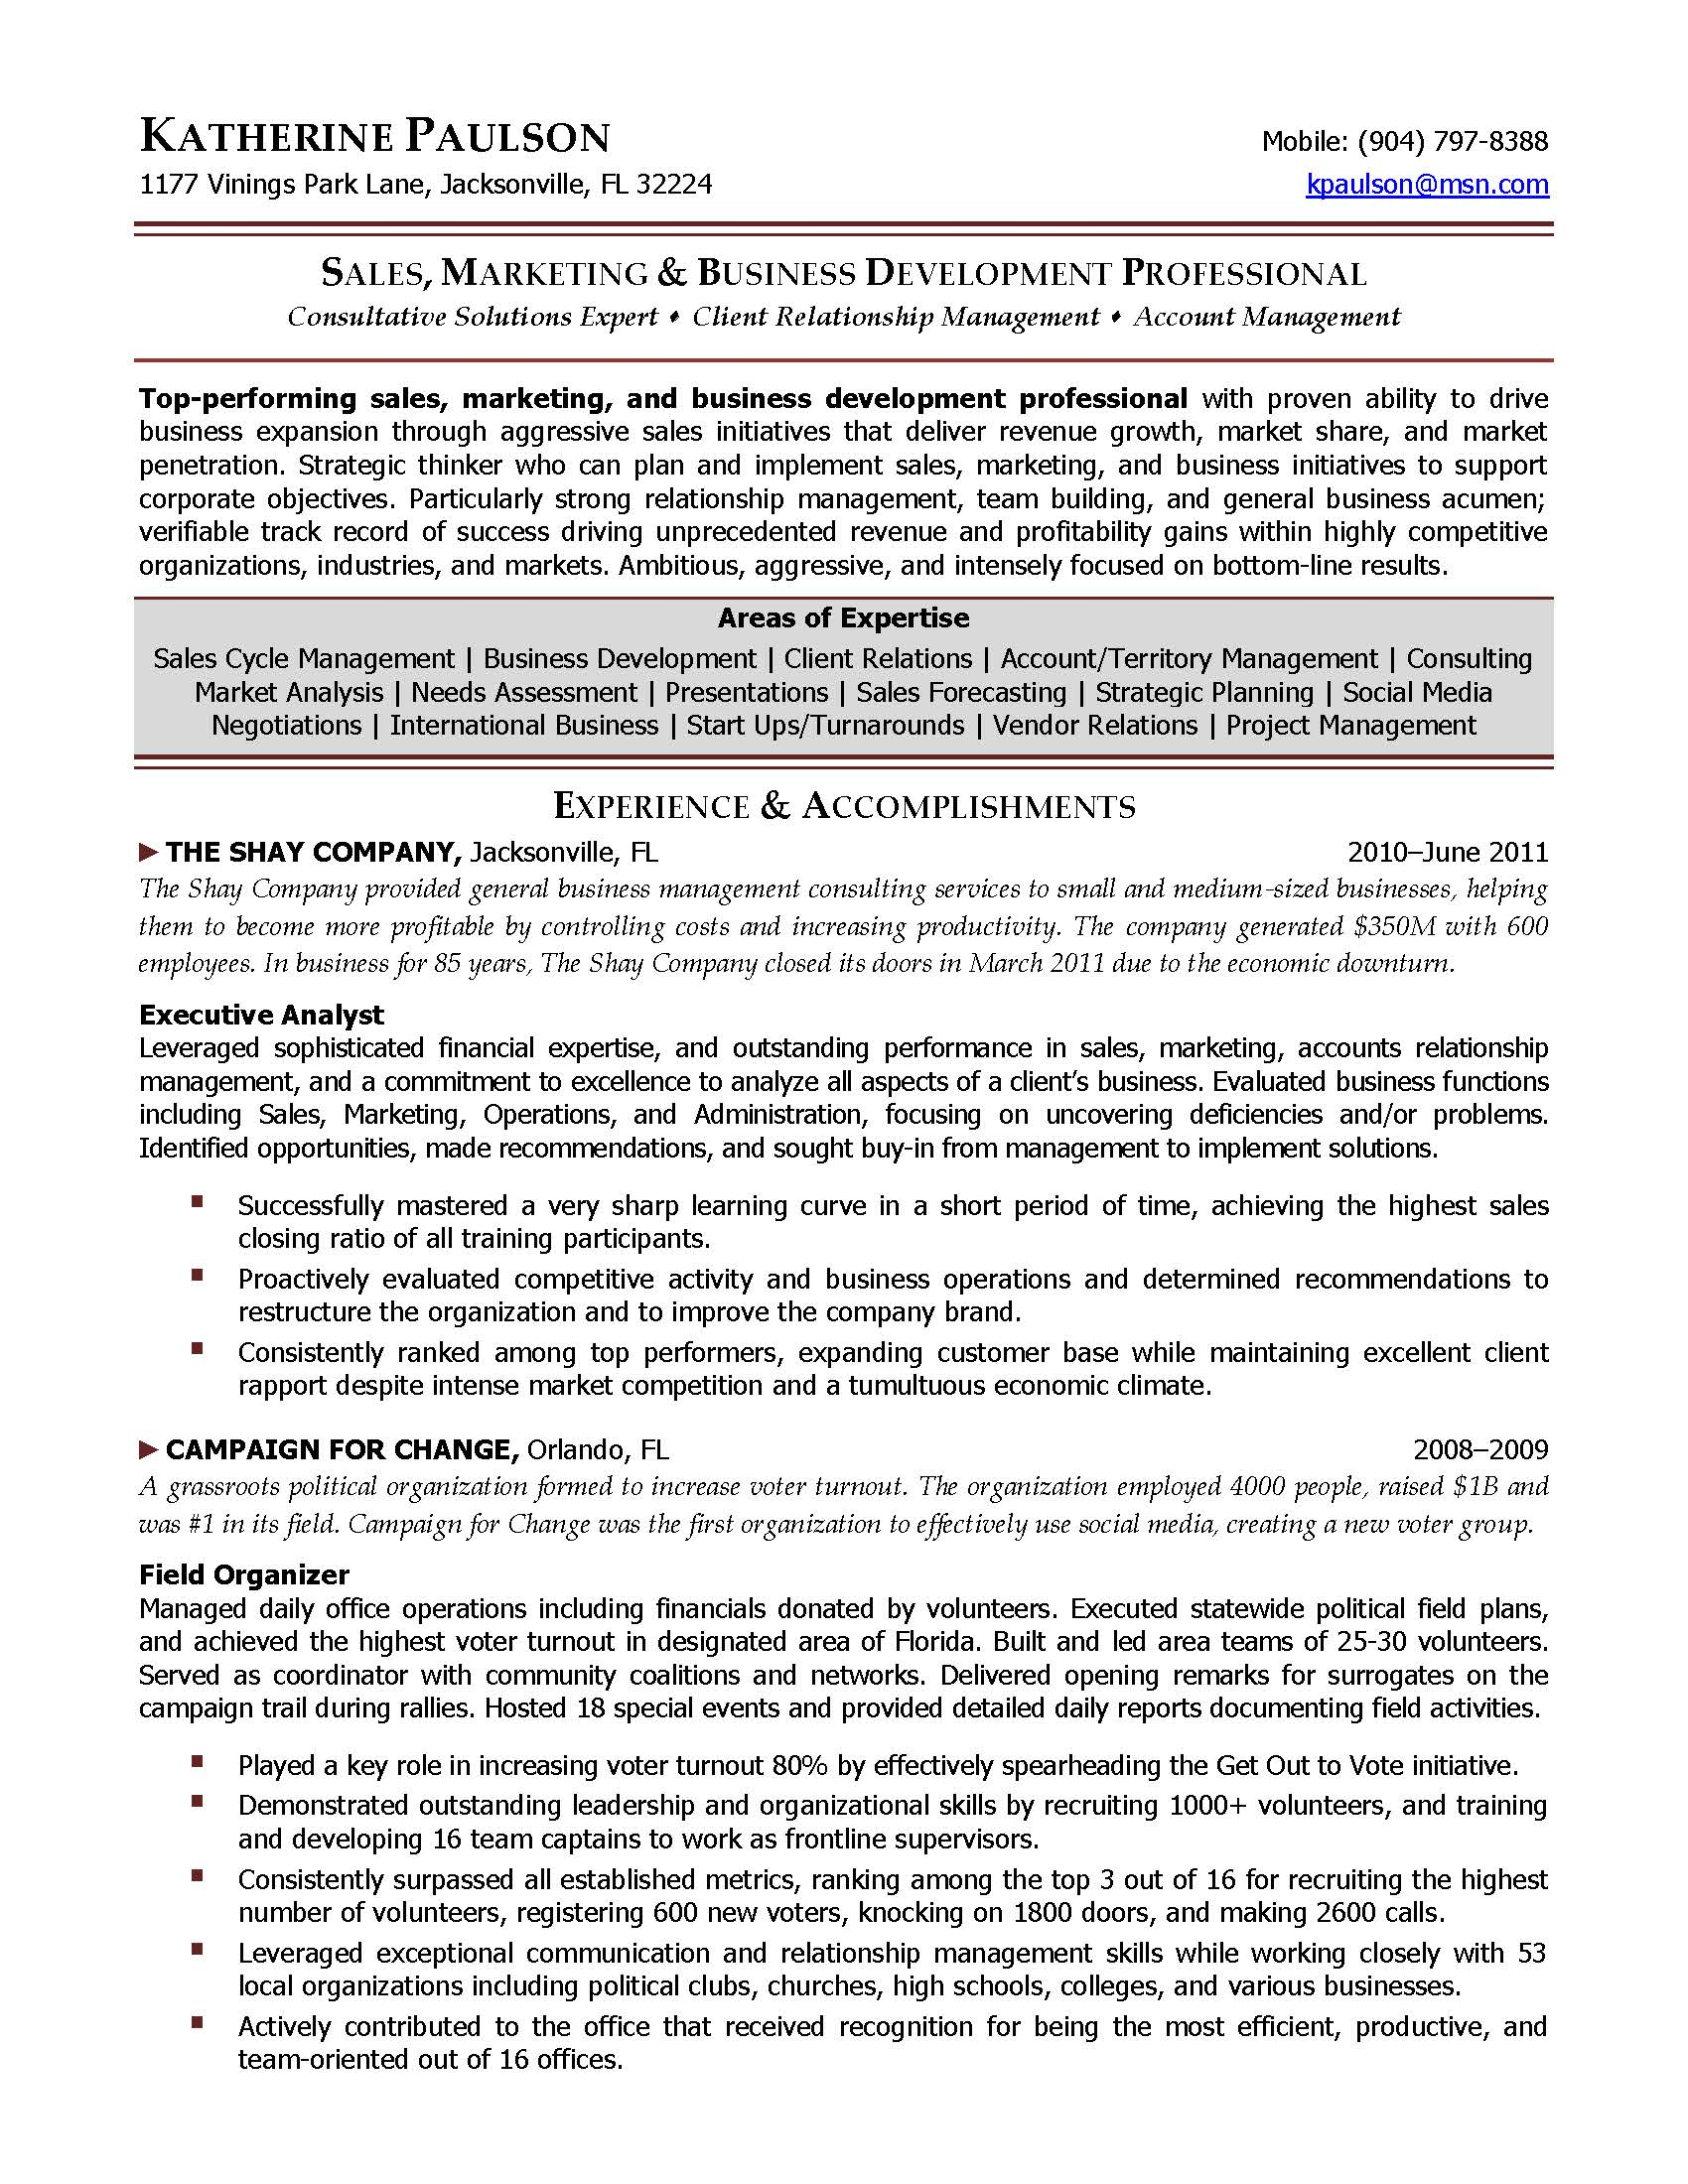 business development director resume sample provided by elite resume writing services - Expert Resume Samples